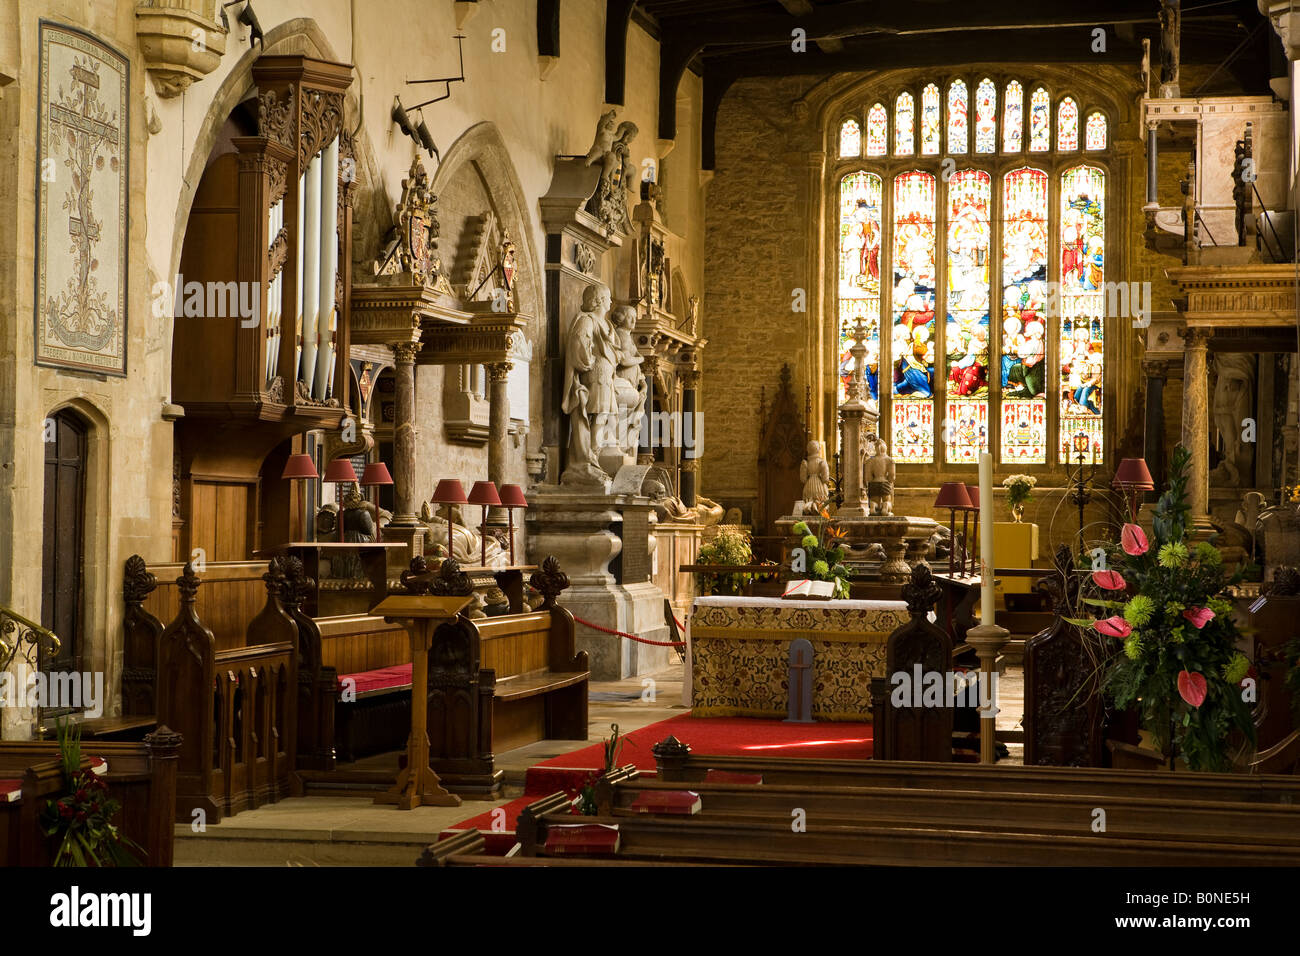 UK England Lincolnshire Bottesford St Marys Church interior Roos family tombs in the chancel Stock Photo